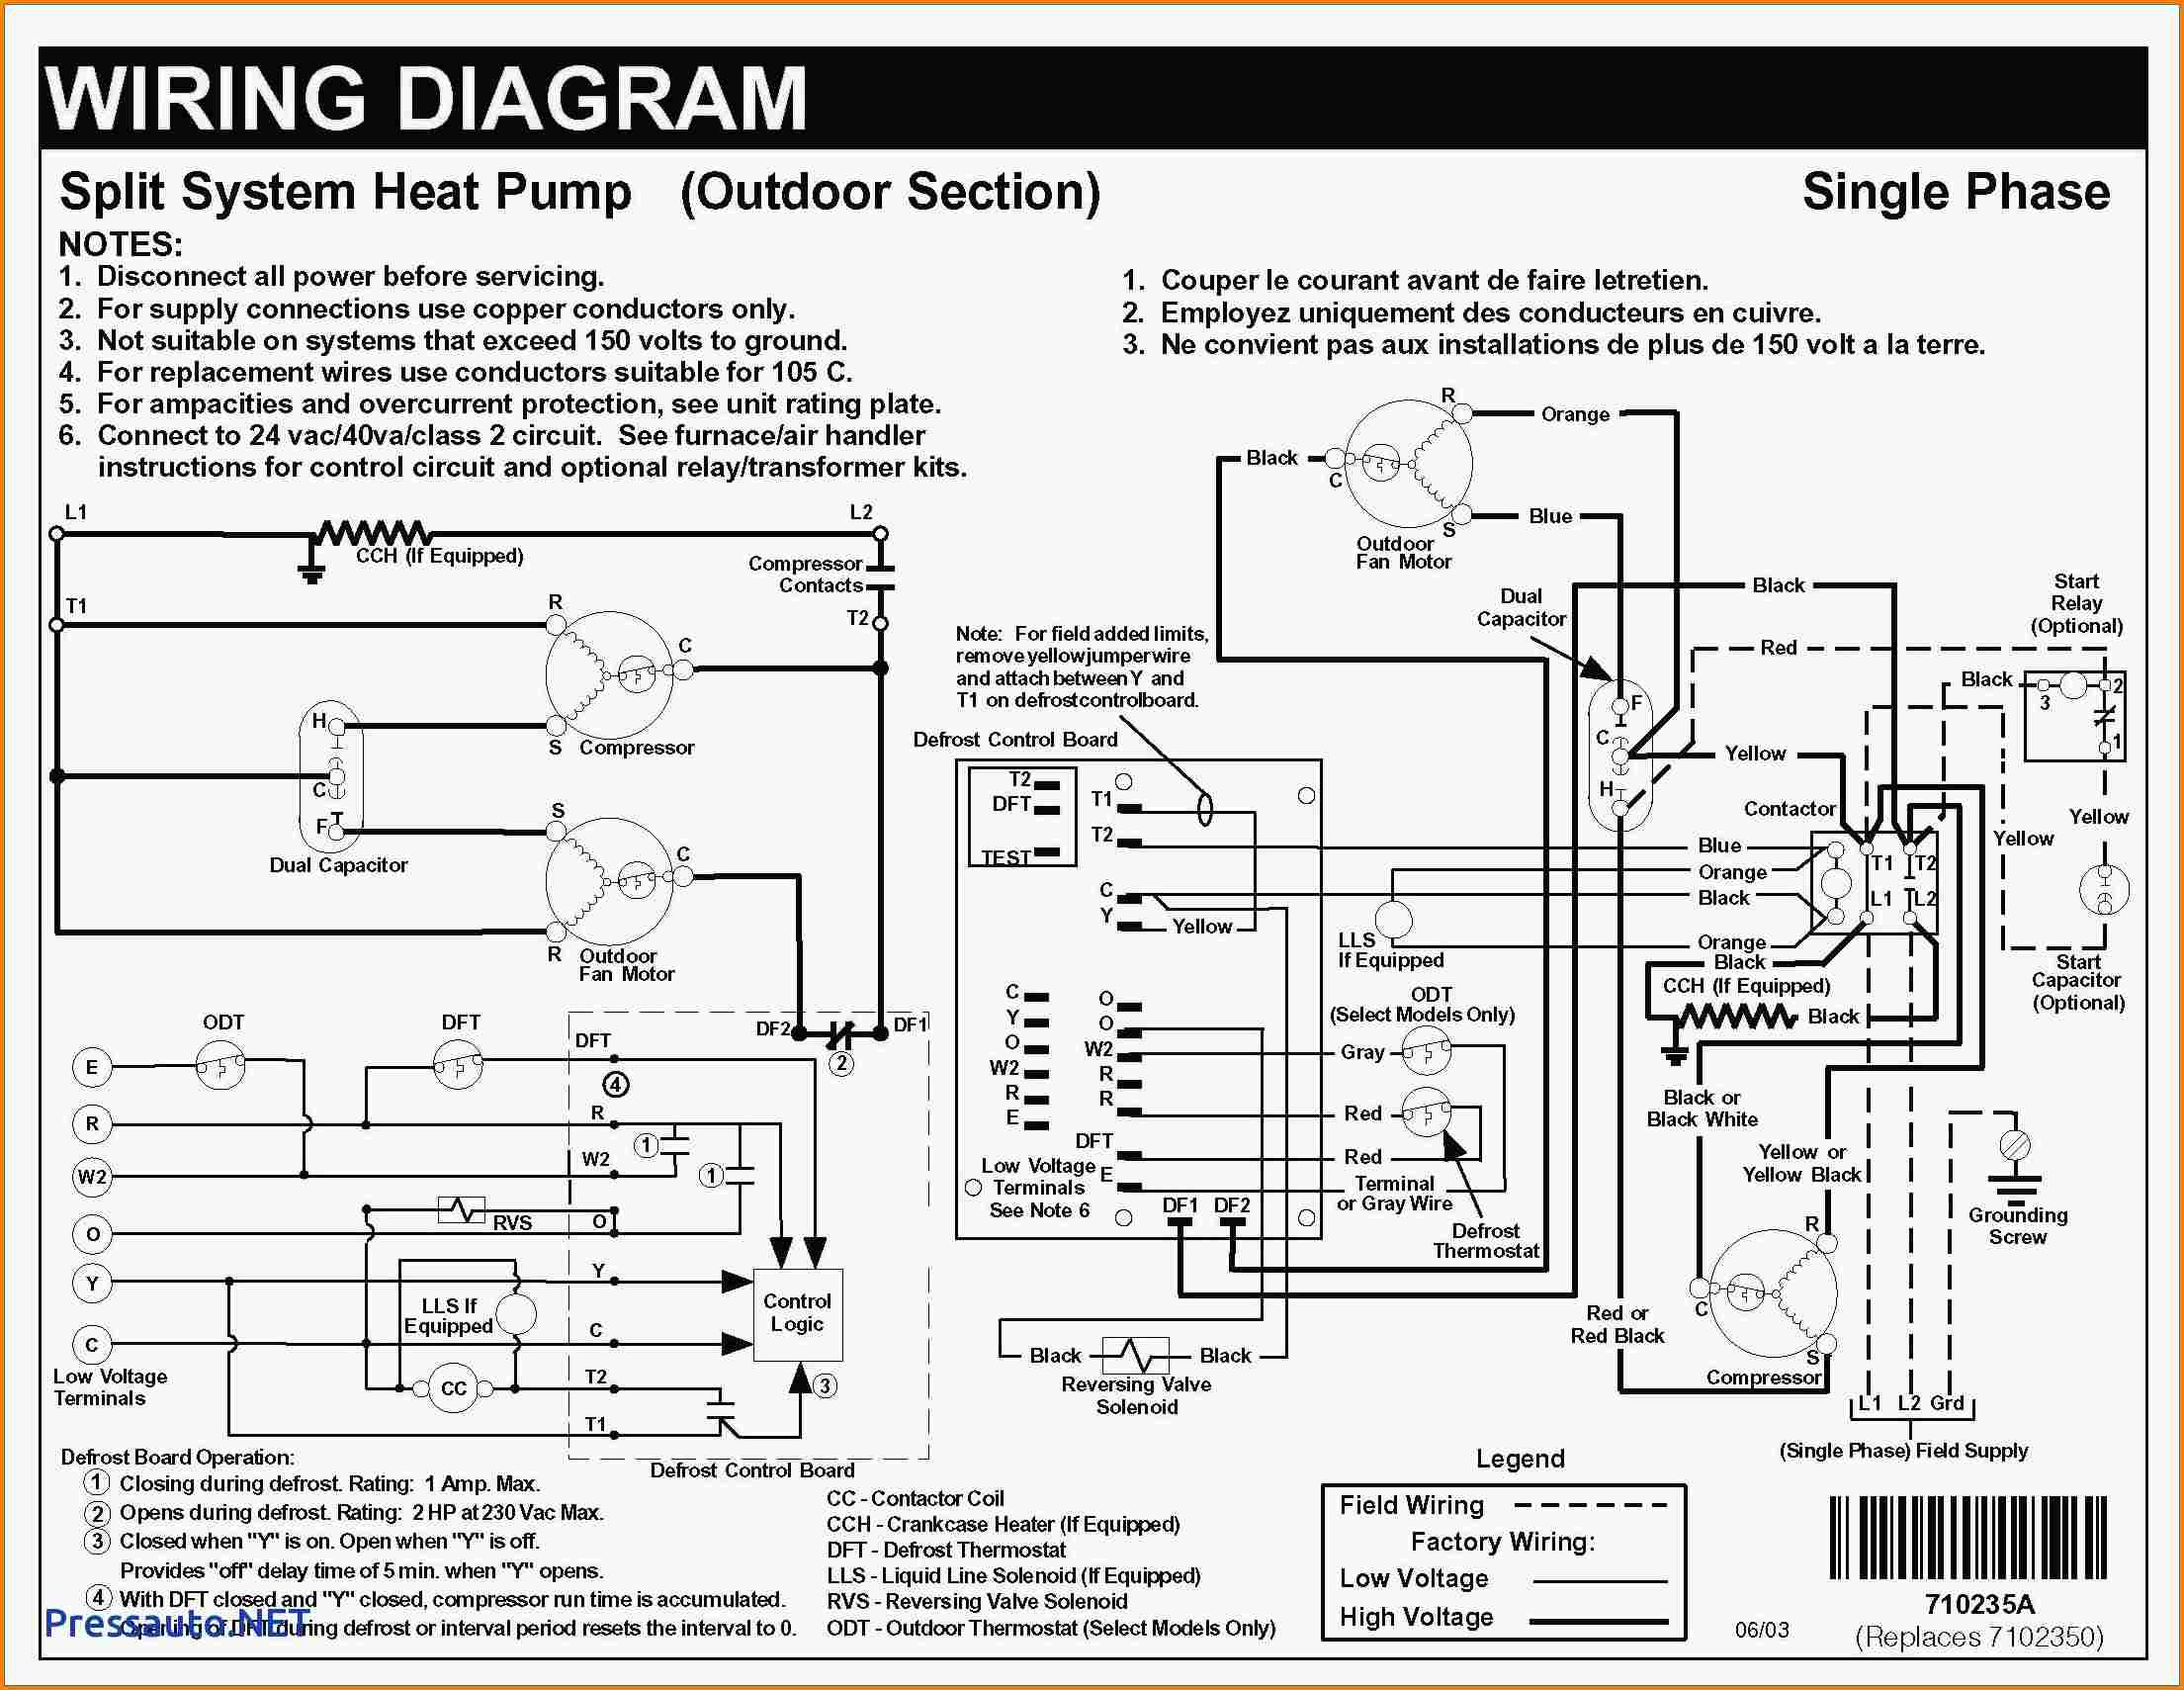 nordyne wiring diagram electric furnace Collection-Basic Electric Furnace Wiring Diagram Free Download Goodman Heat Strip Addict Nordyne Nortron Rheem Thermostat 5 7-e